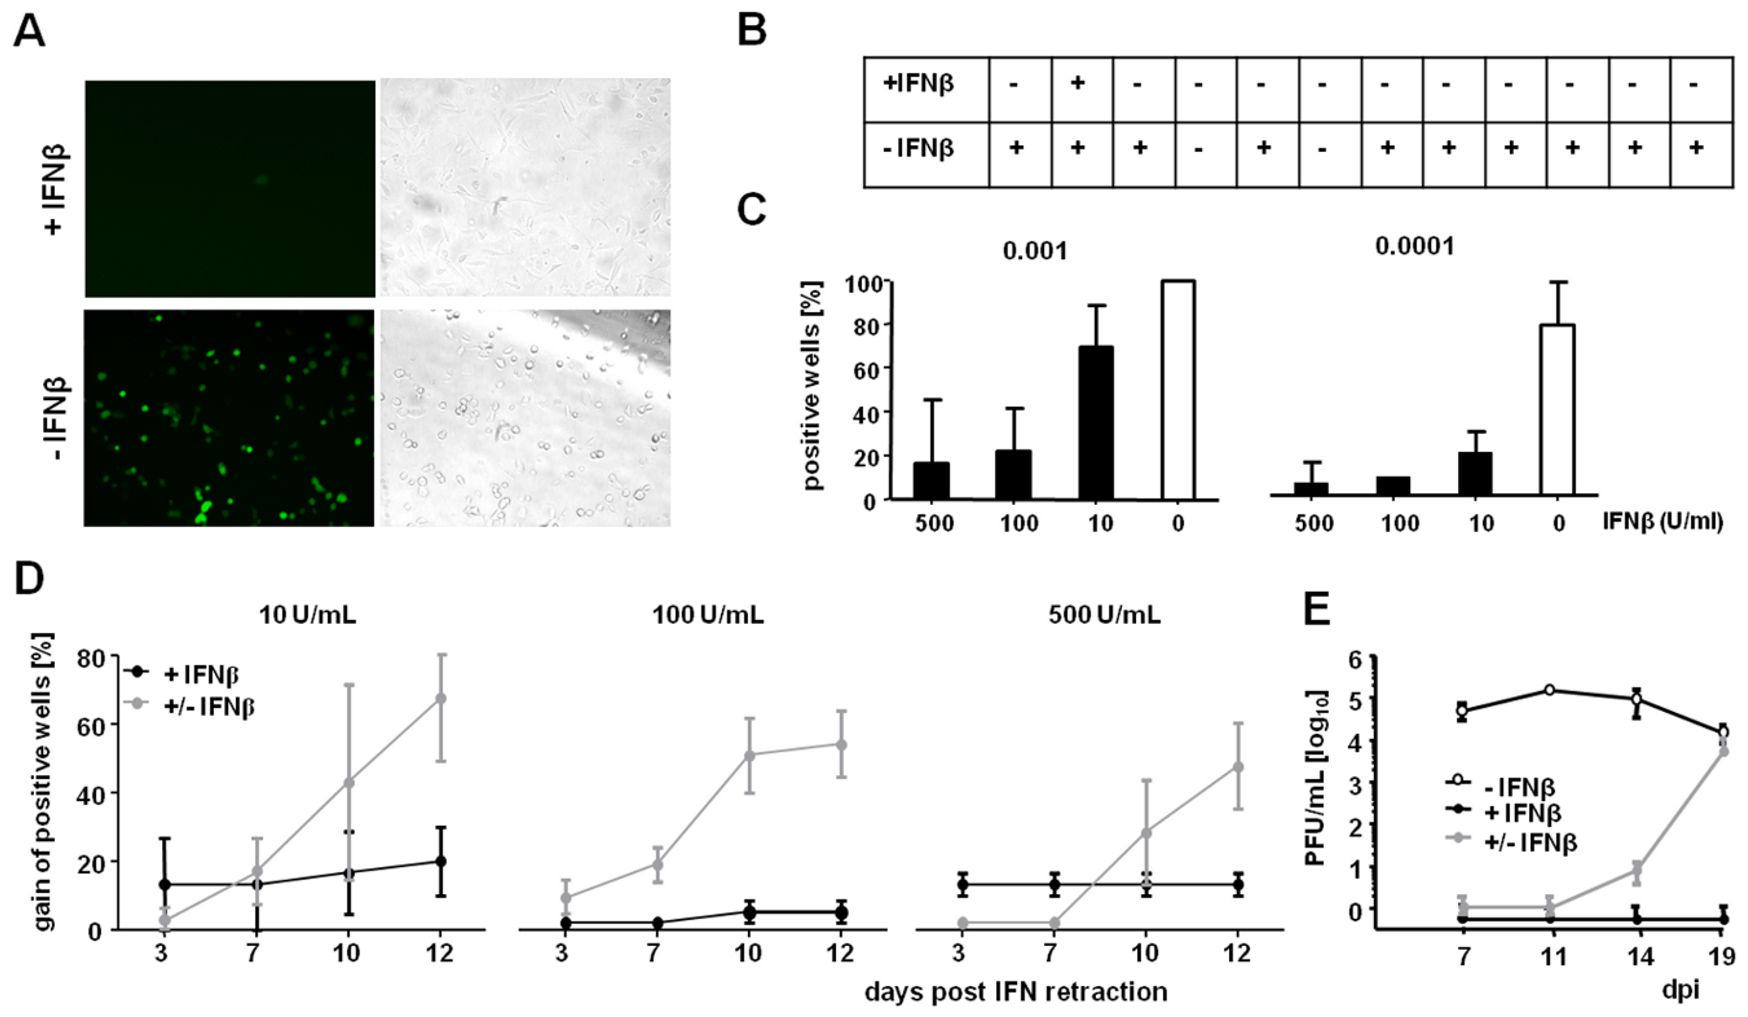 Inhibition of viral replication by IFNβ is reversible and occurs prior to immediate-early gene expression.